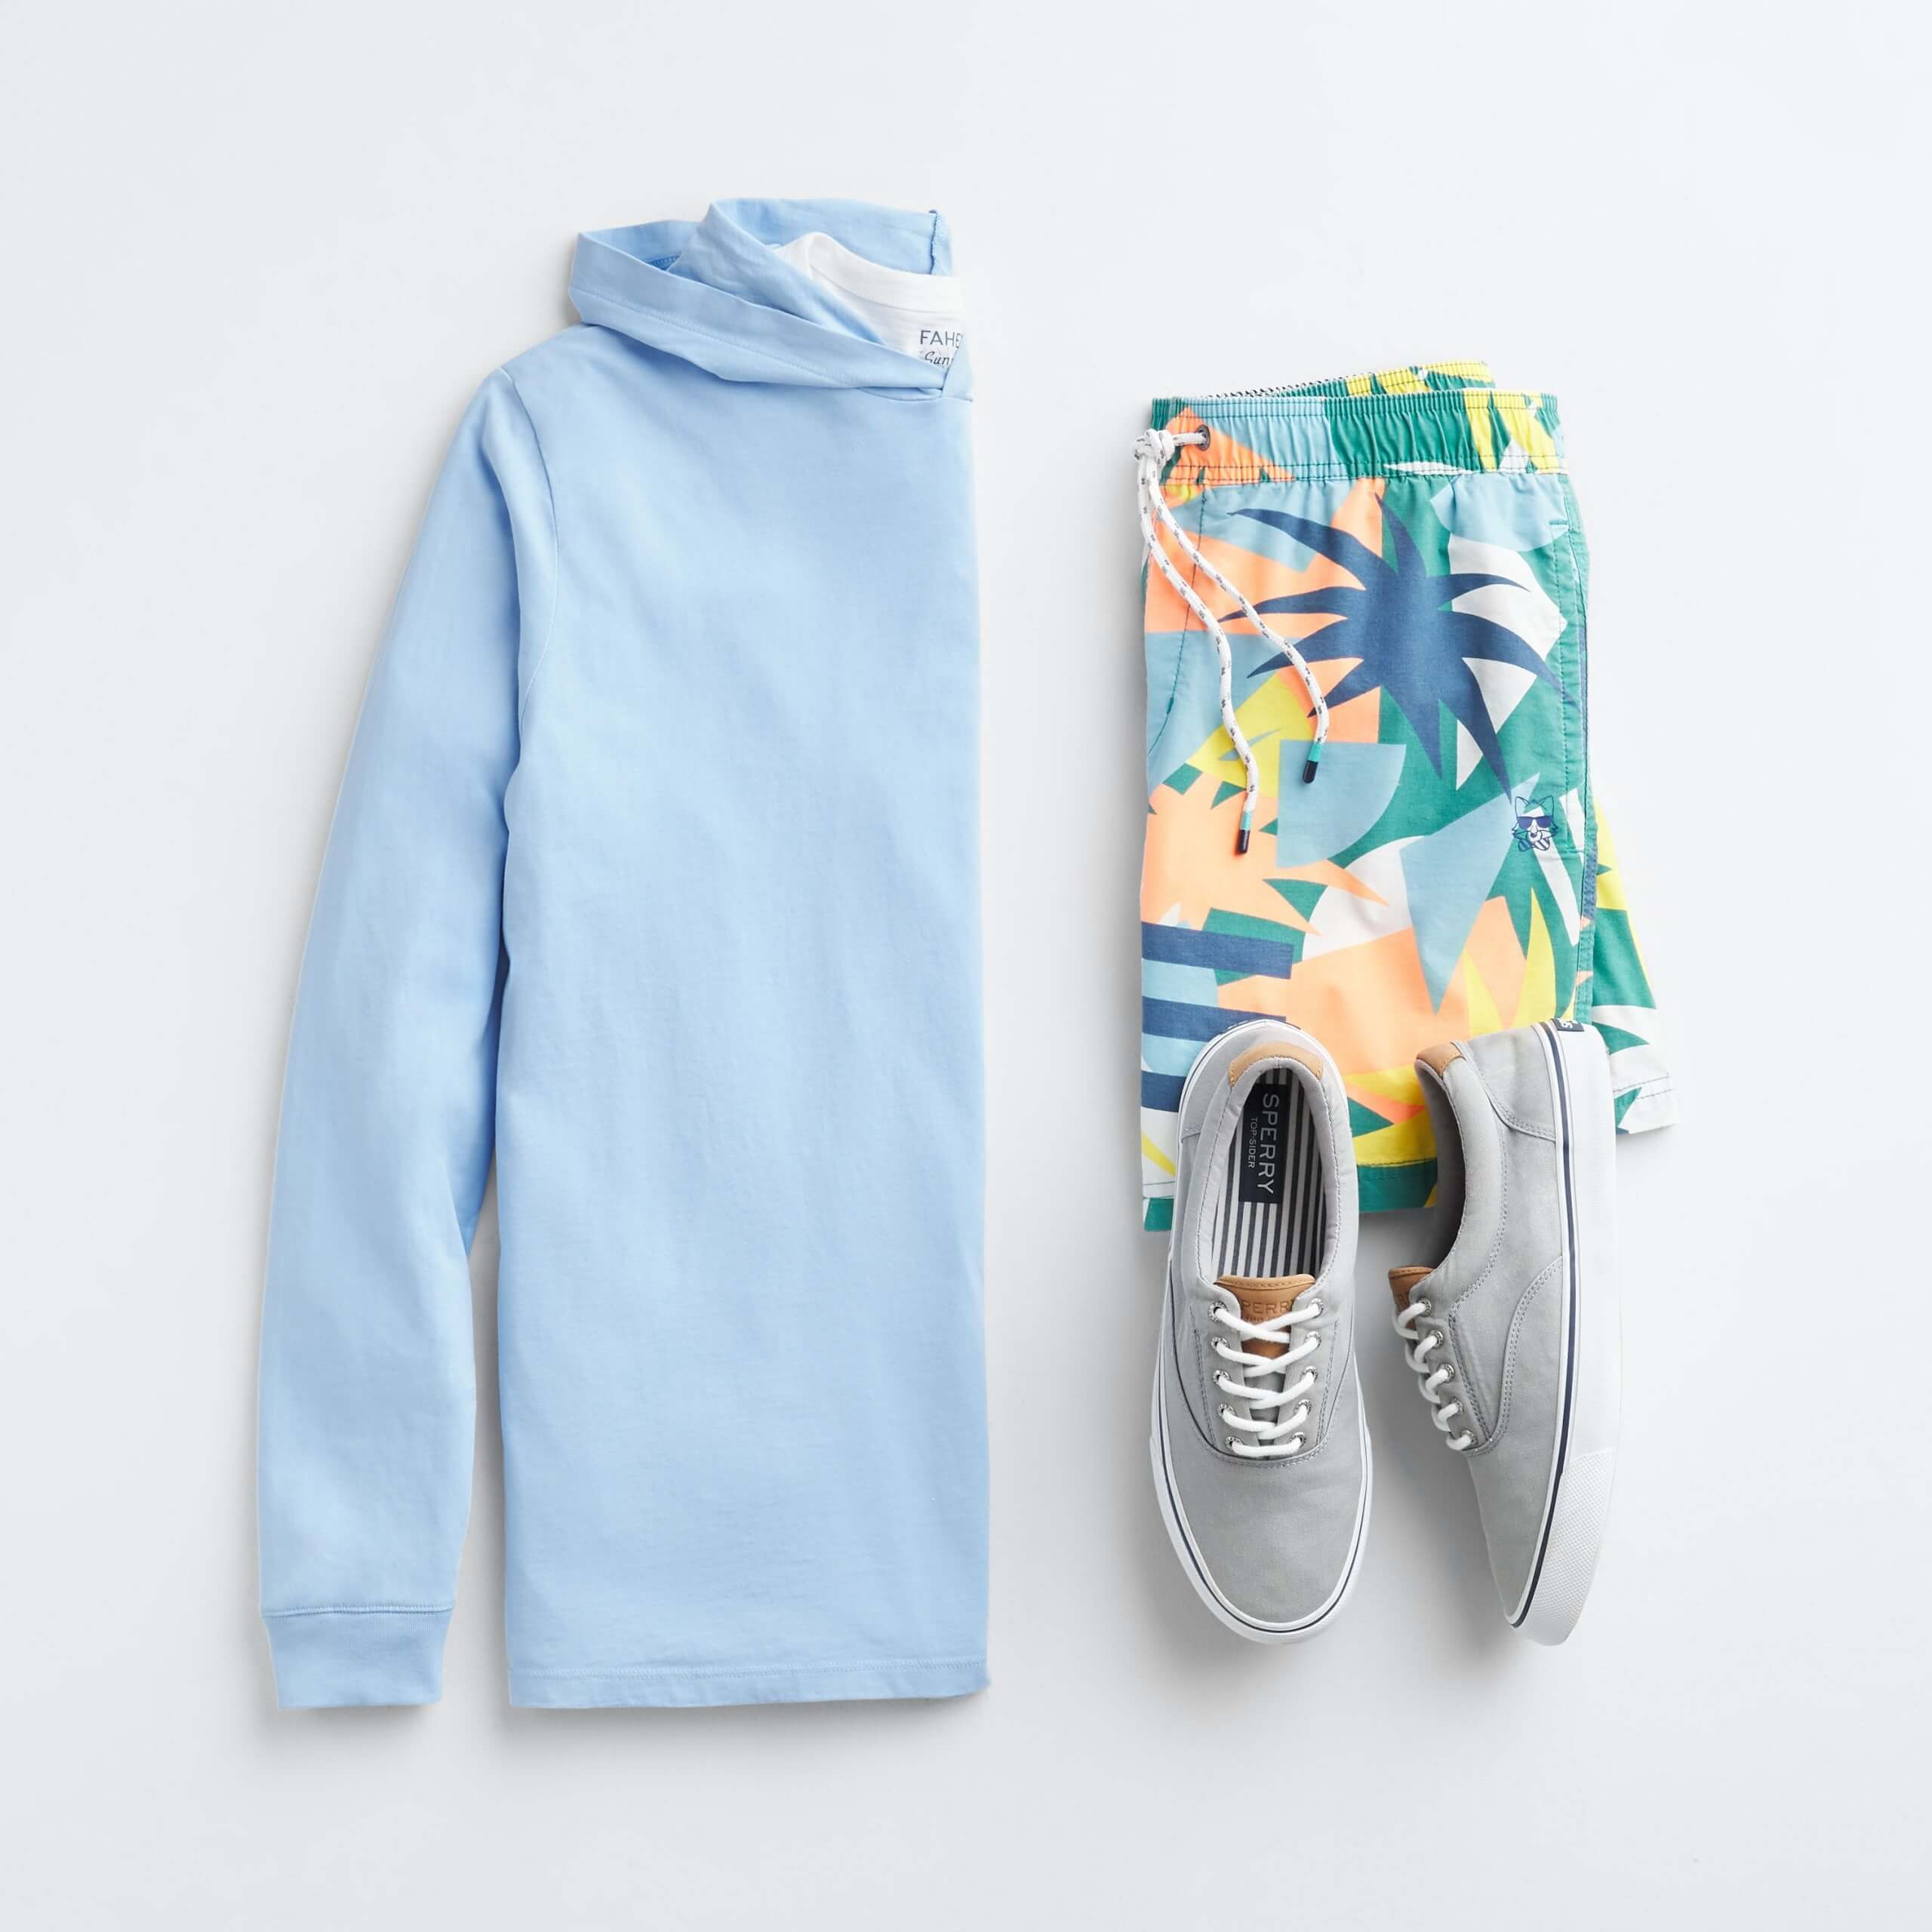 Stitch Fix Men's outfit laydown featuring a blue hoodie, multi-colored tropical board shorts and grey lace-up sneakers.